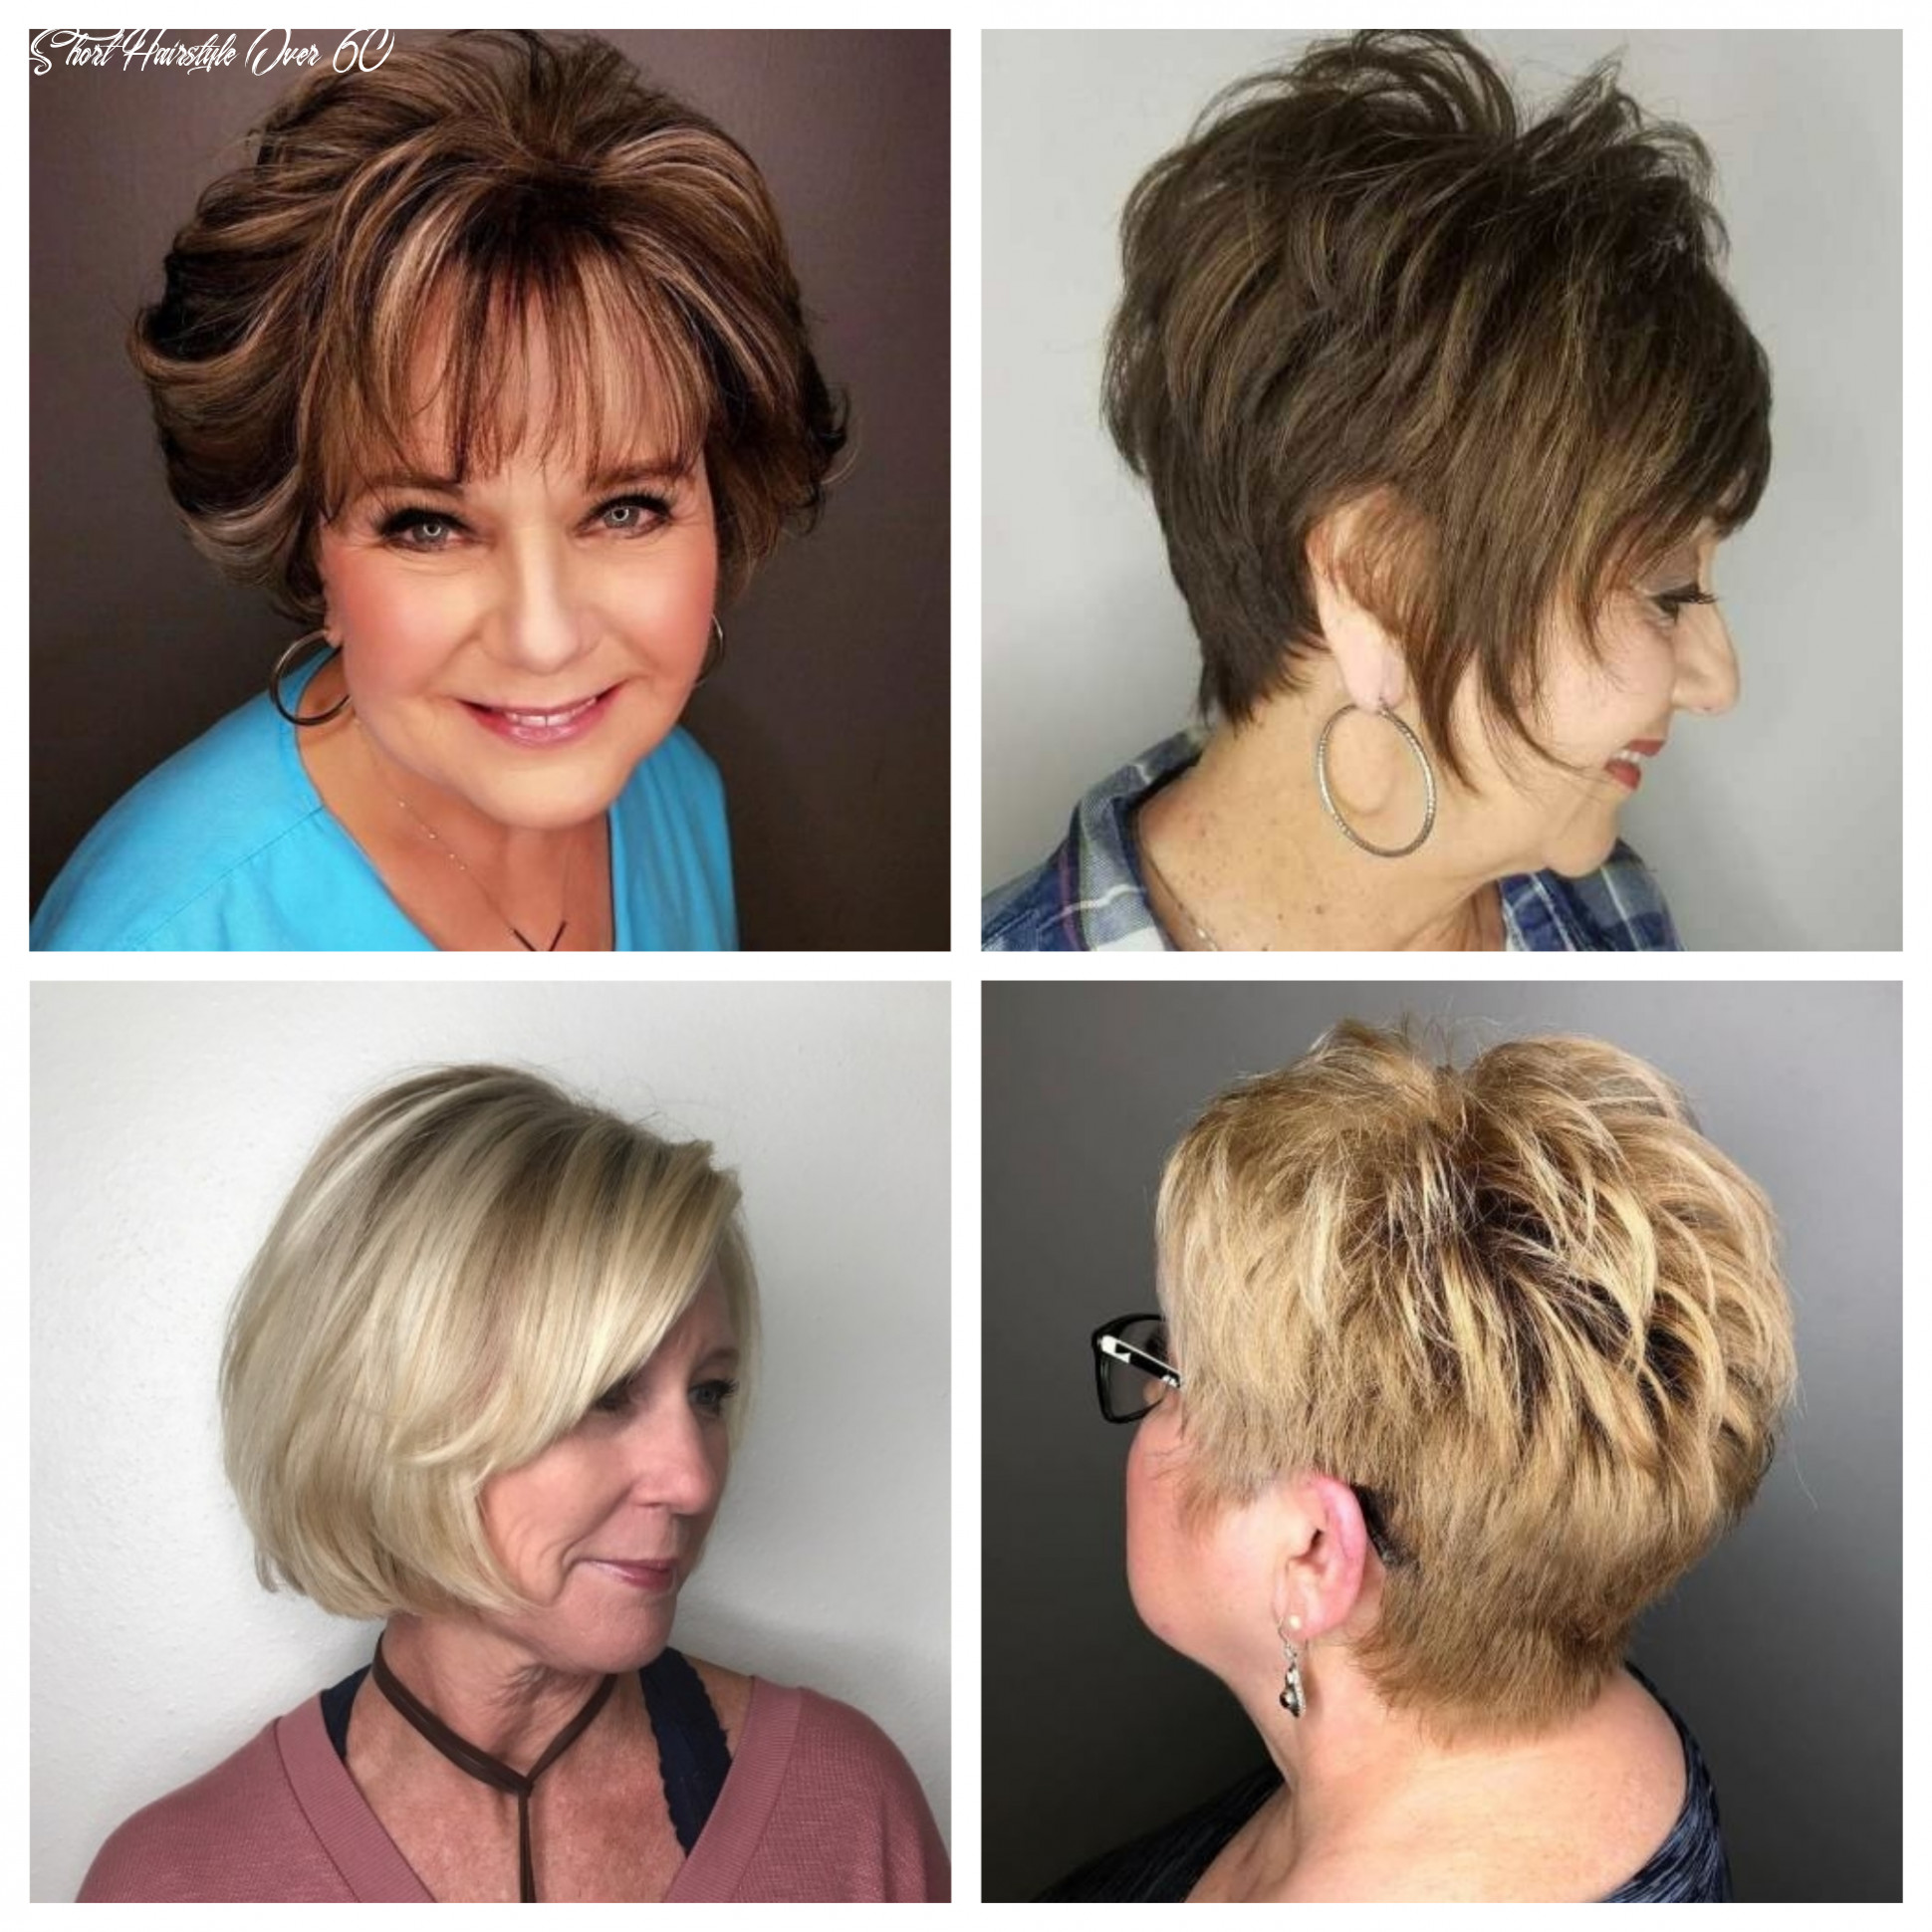 Short hairstyles for women over 12 | 12 haircuts, hairstyles and